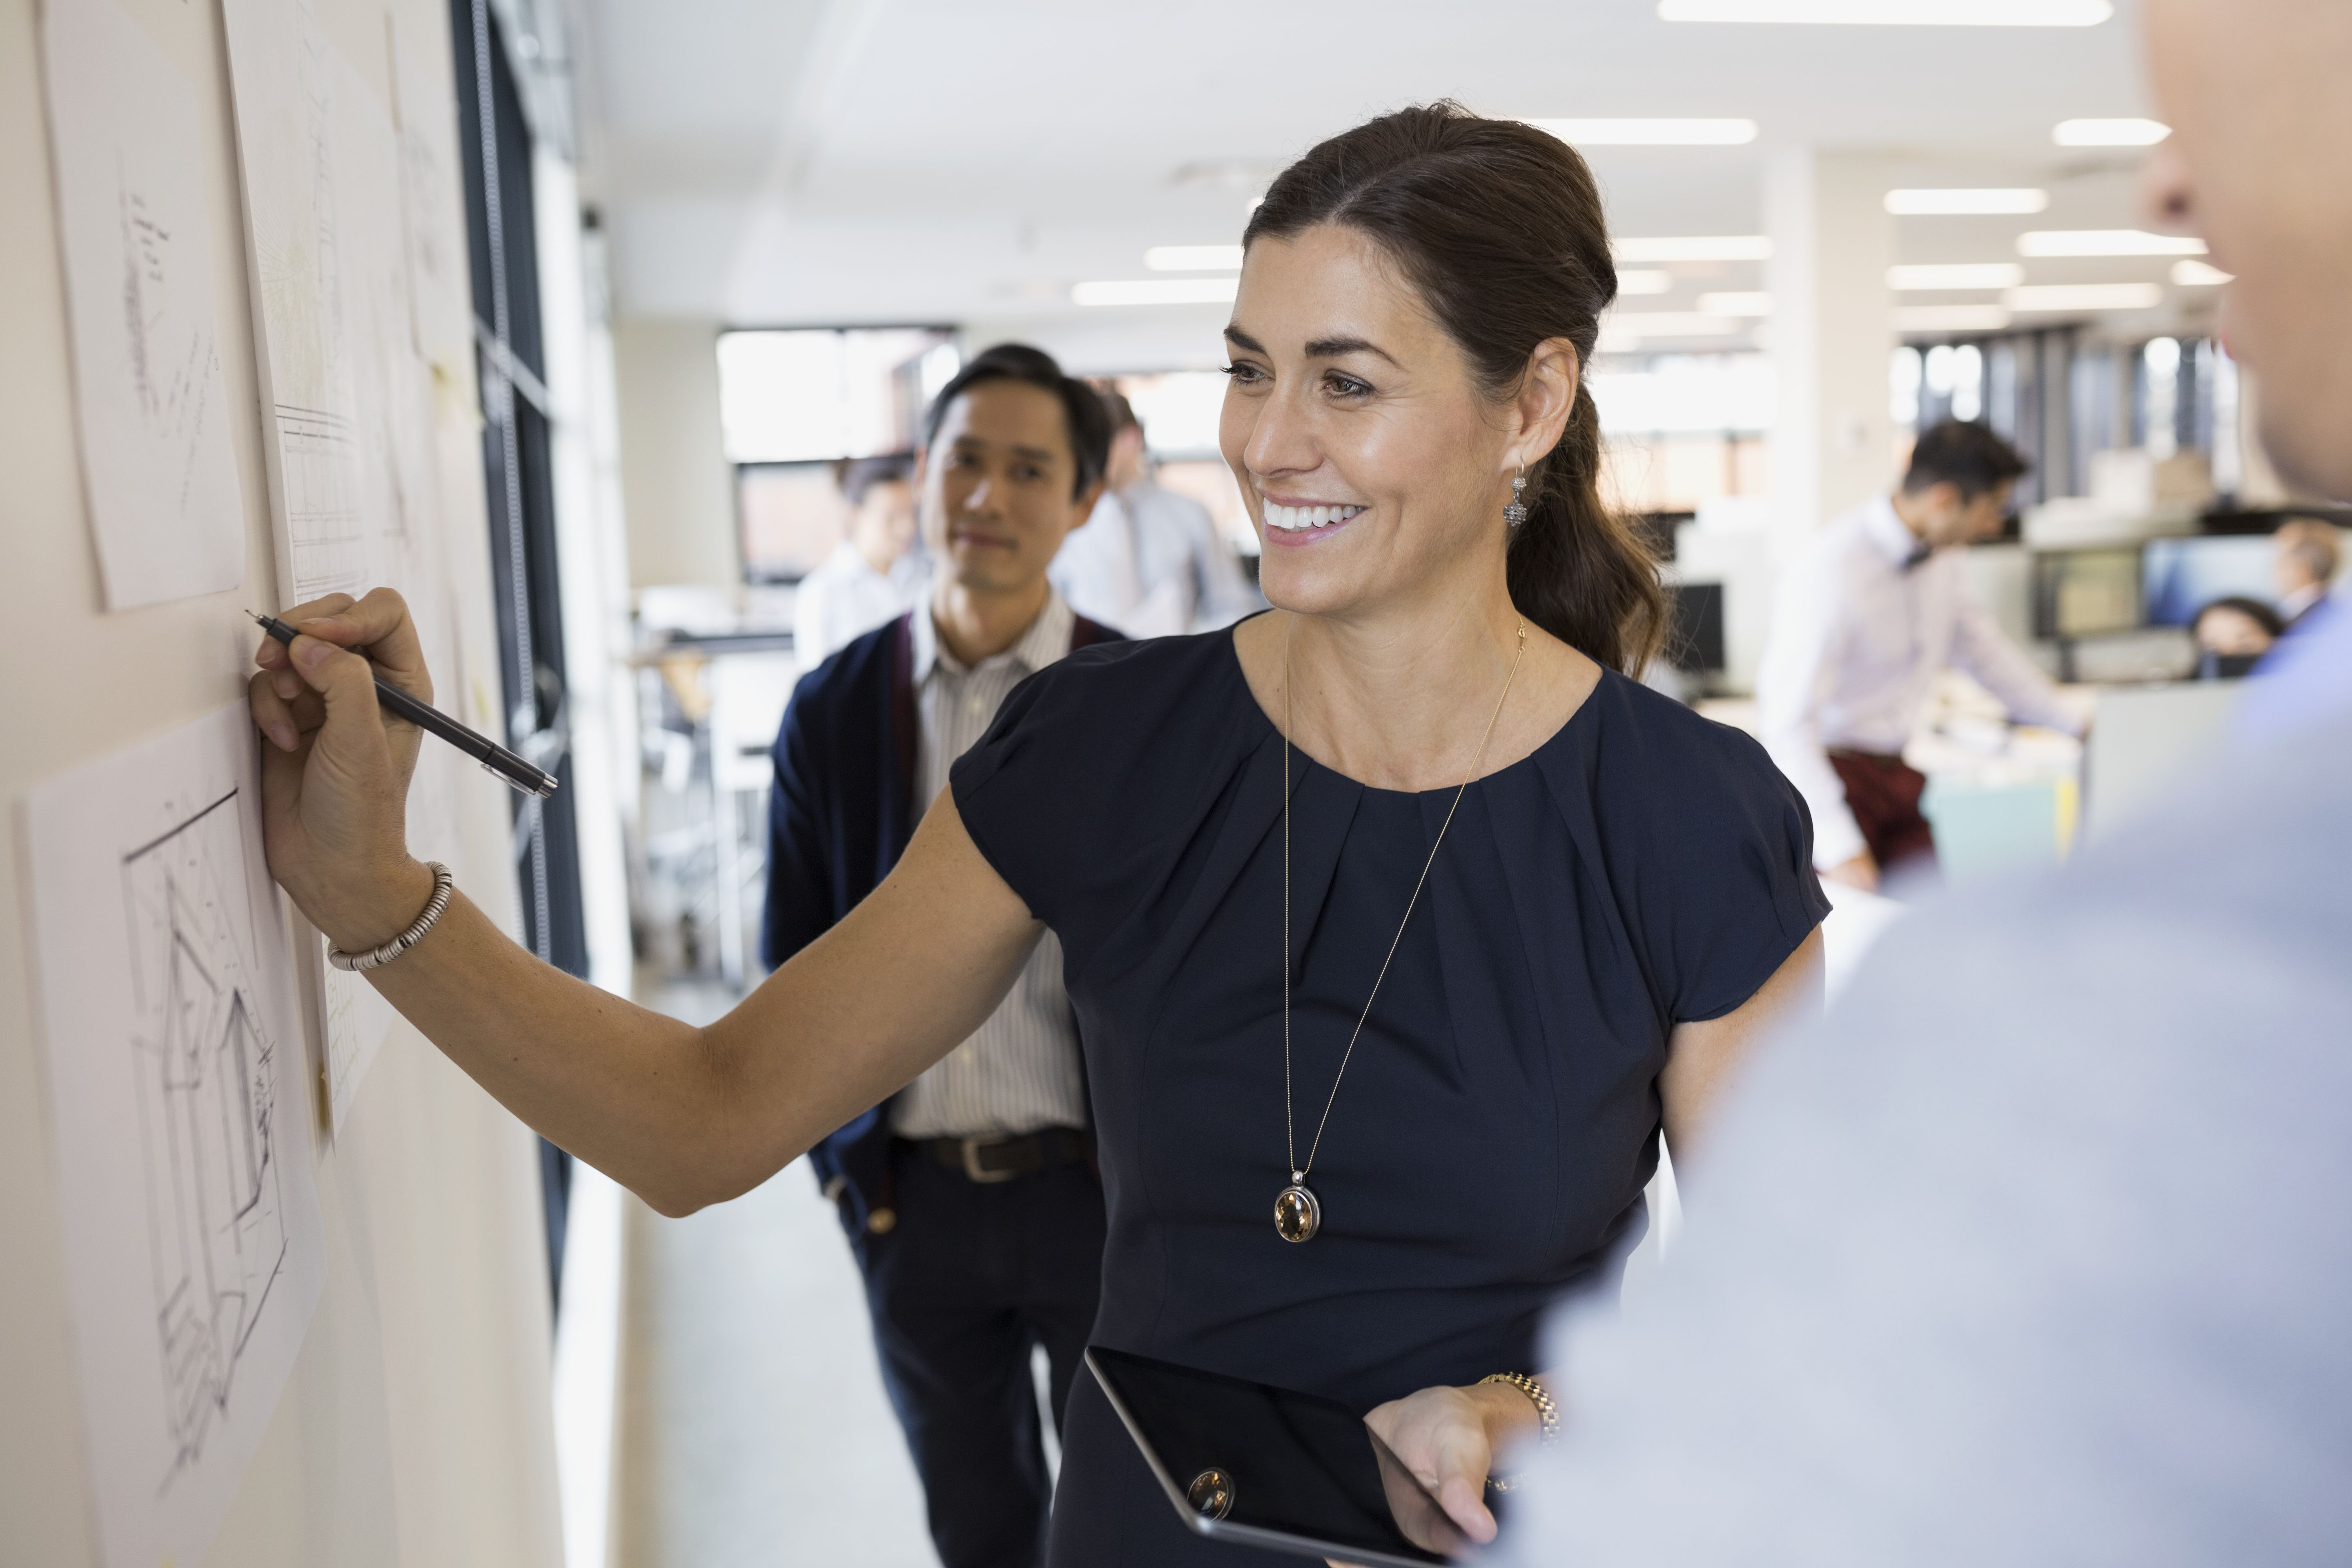 Professional-looking woman leading a team meeting at a white board